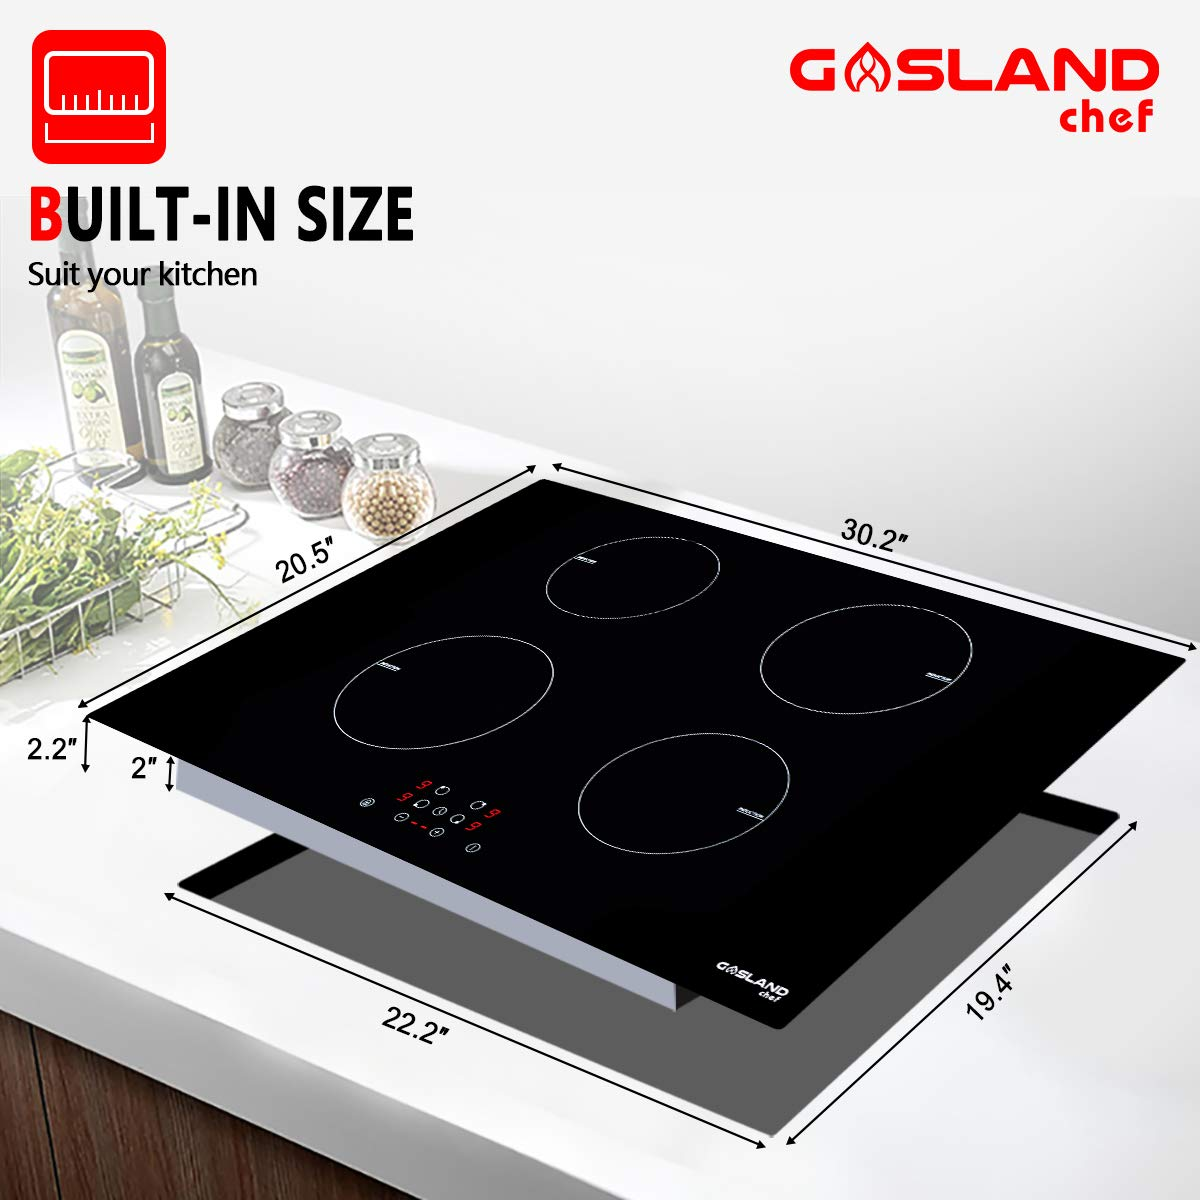 Gasland chef IH77BF Induction Cooktop 30